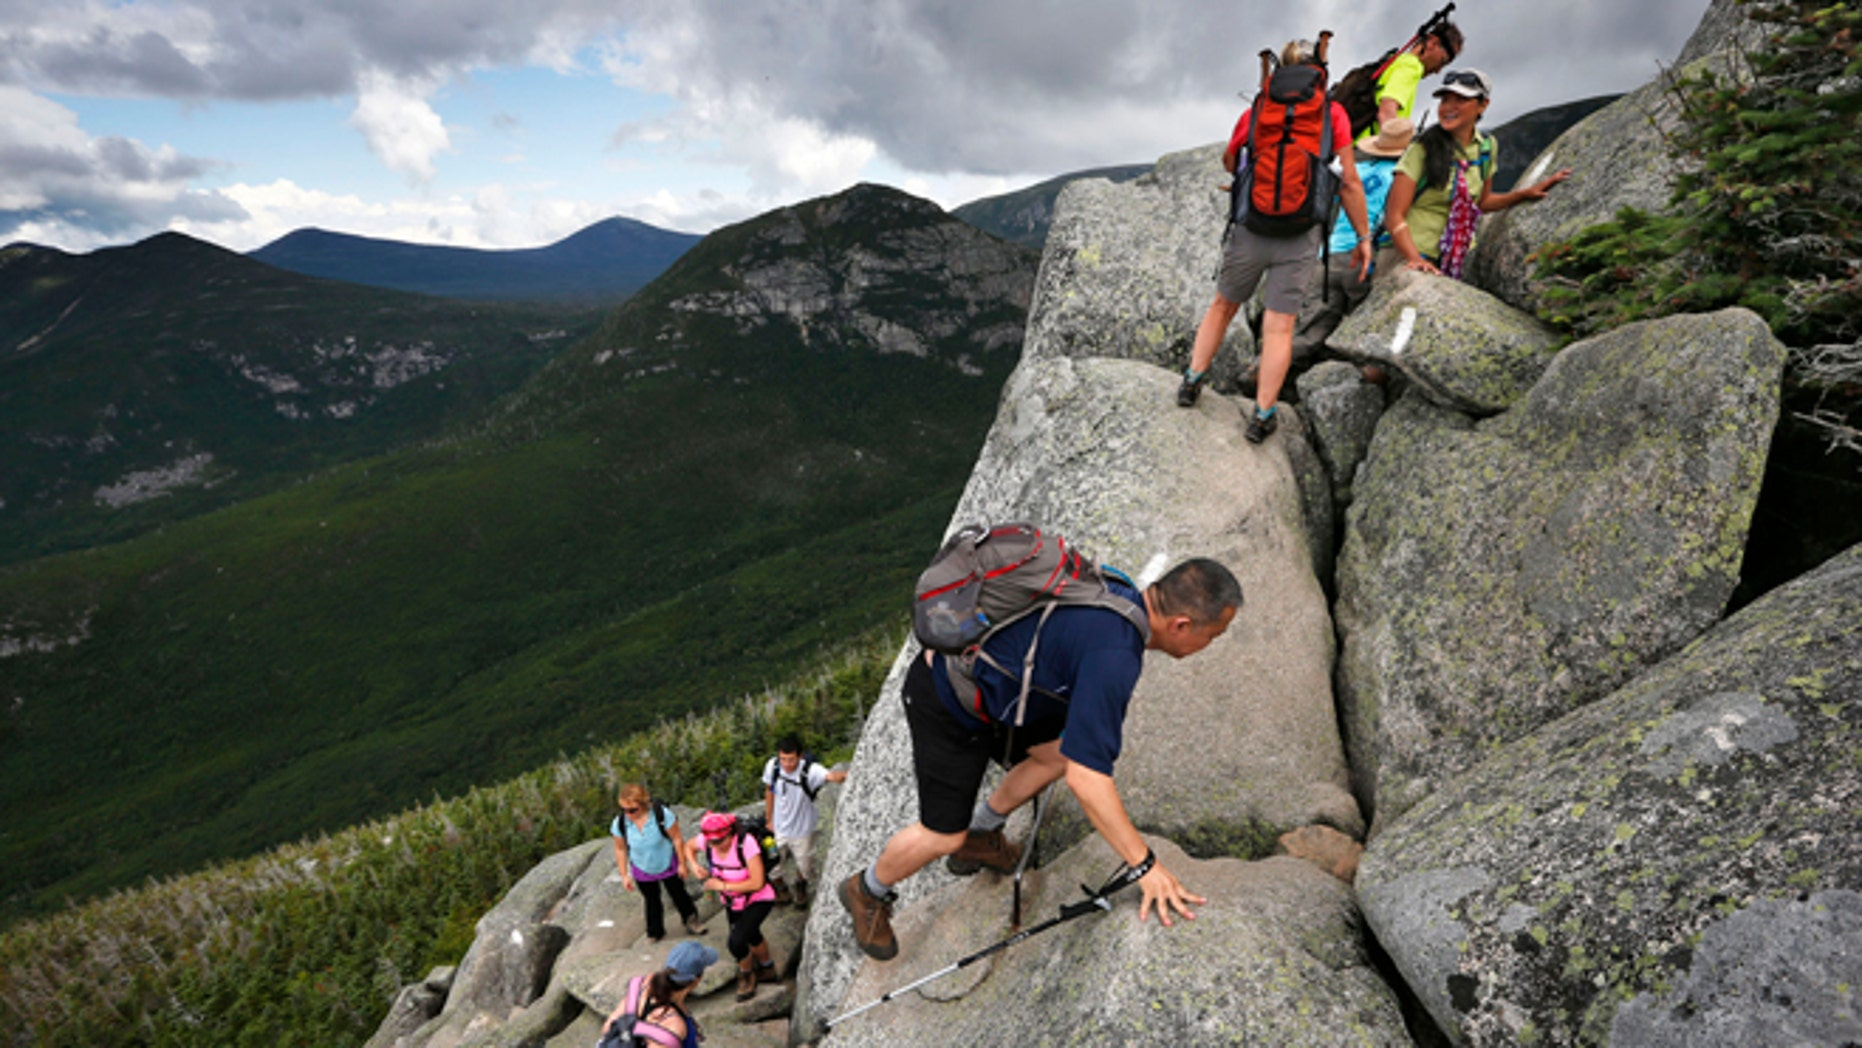 Aug. 7, 2015: Day-hikers scramble over rocky boulders on the Appalachian Trail below the summit of Mt. Katahdin in Baxter State Park in Maine. The sharp rise in the number people using the Appalachian Trail is causing headaches for officials, who say theyre dealing with increasing problems along the 2,189-mile footpath.